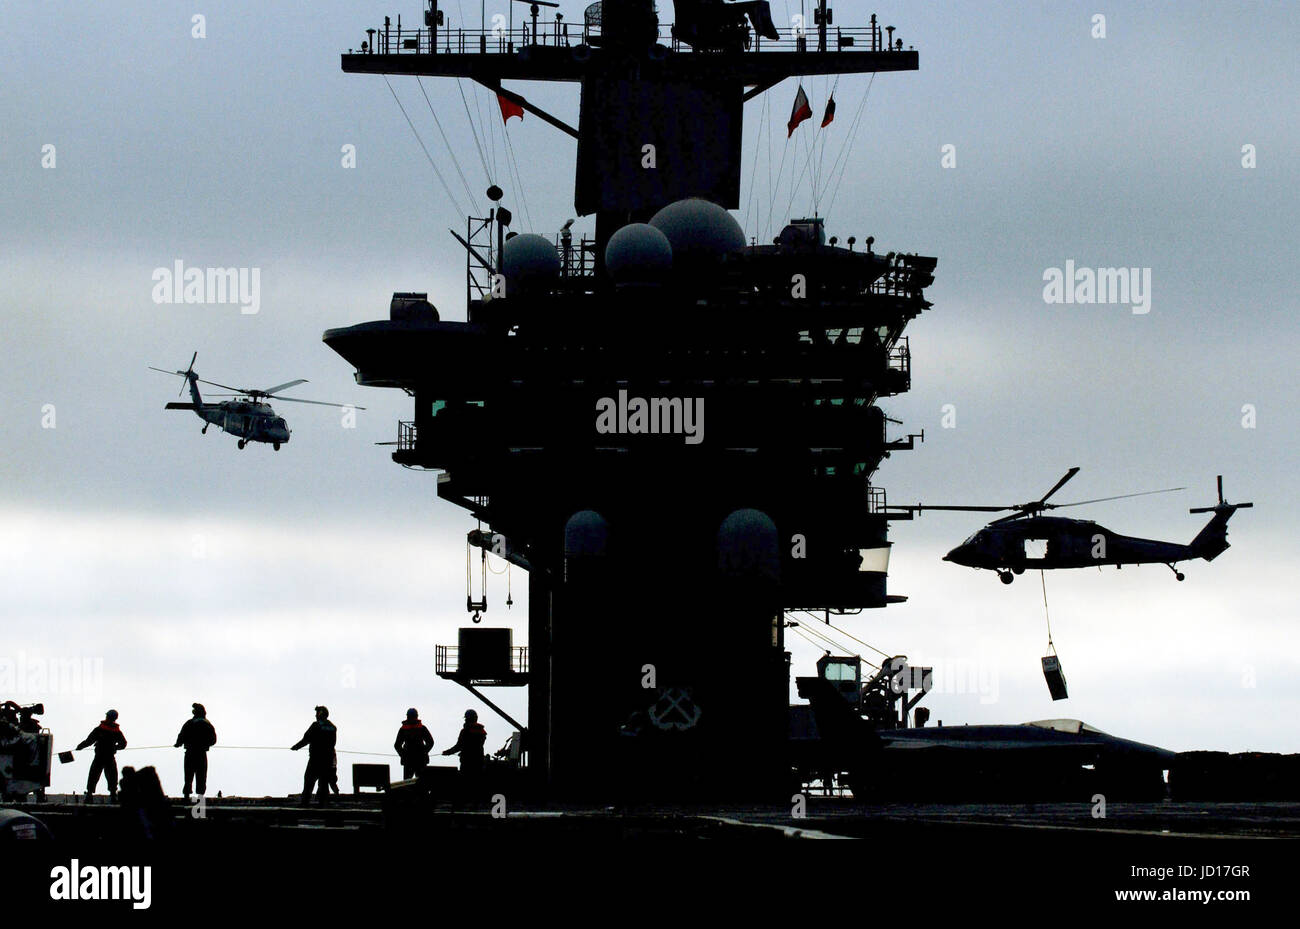 Navy MH-60S Seahawk helicopters airlift ammunition from the aircraft carrier USS Nimitz (CVN 68) to the Military - Stock Image